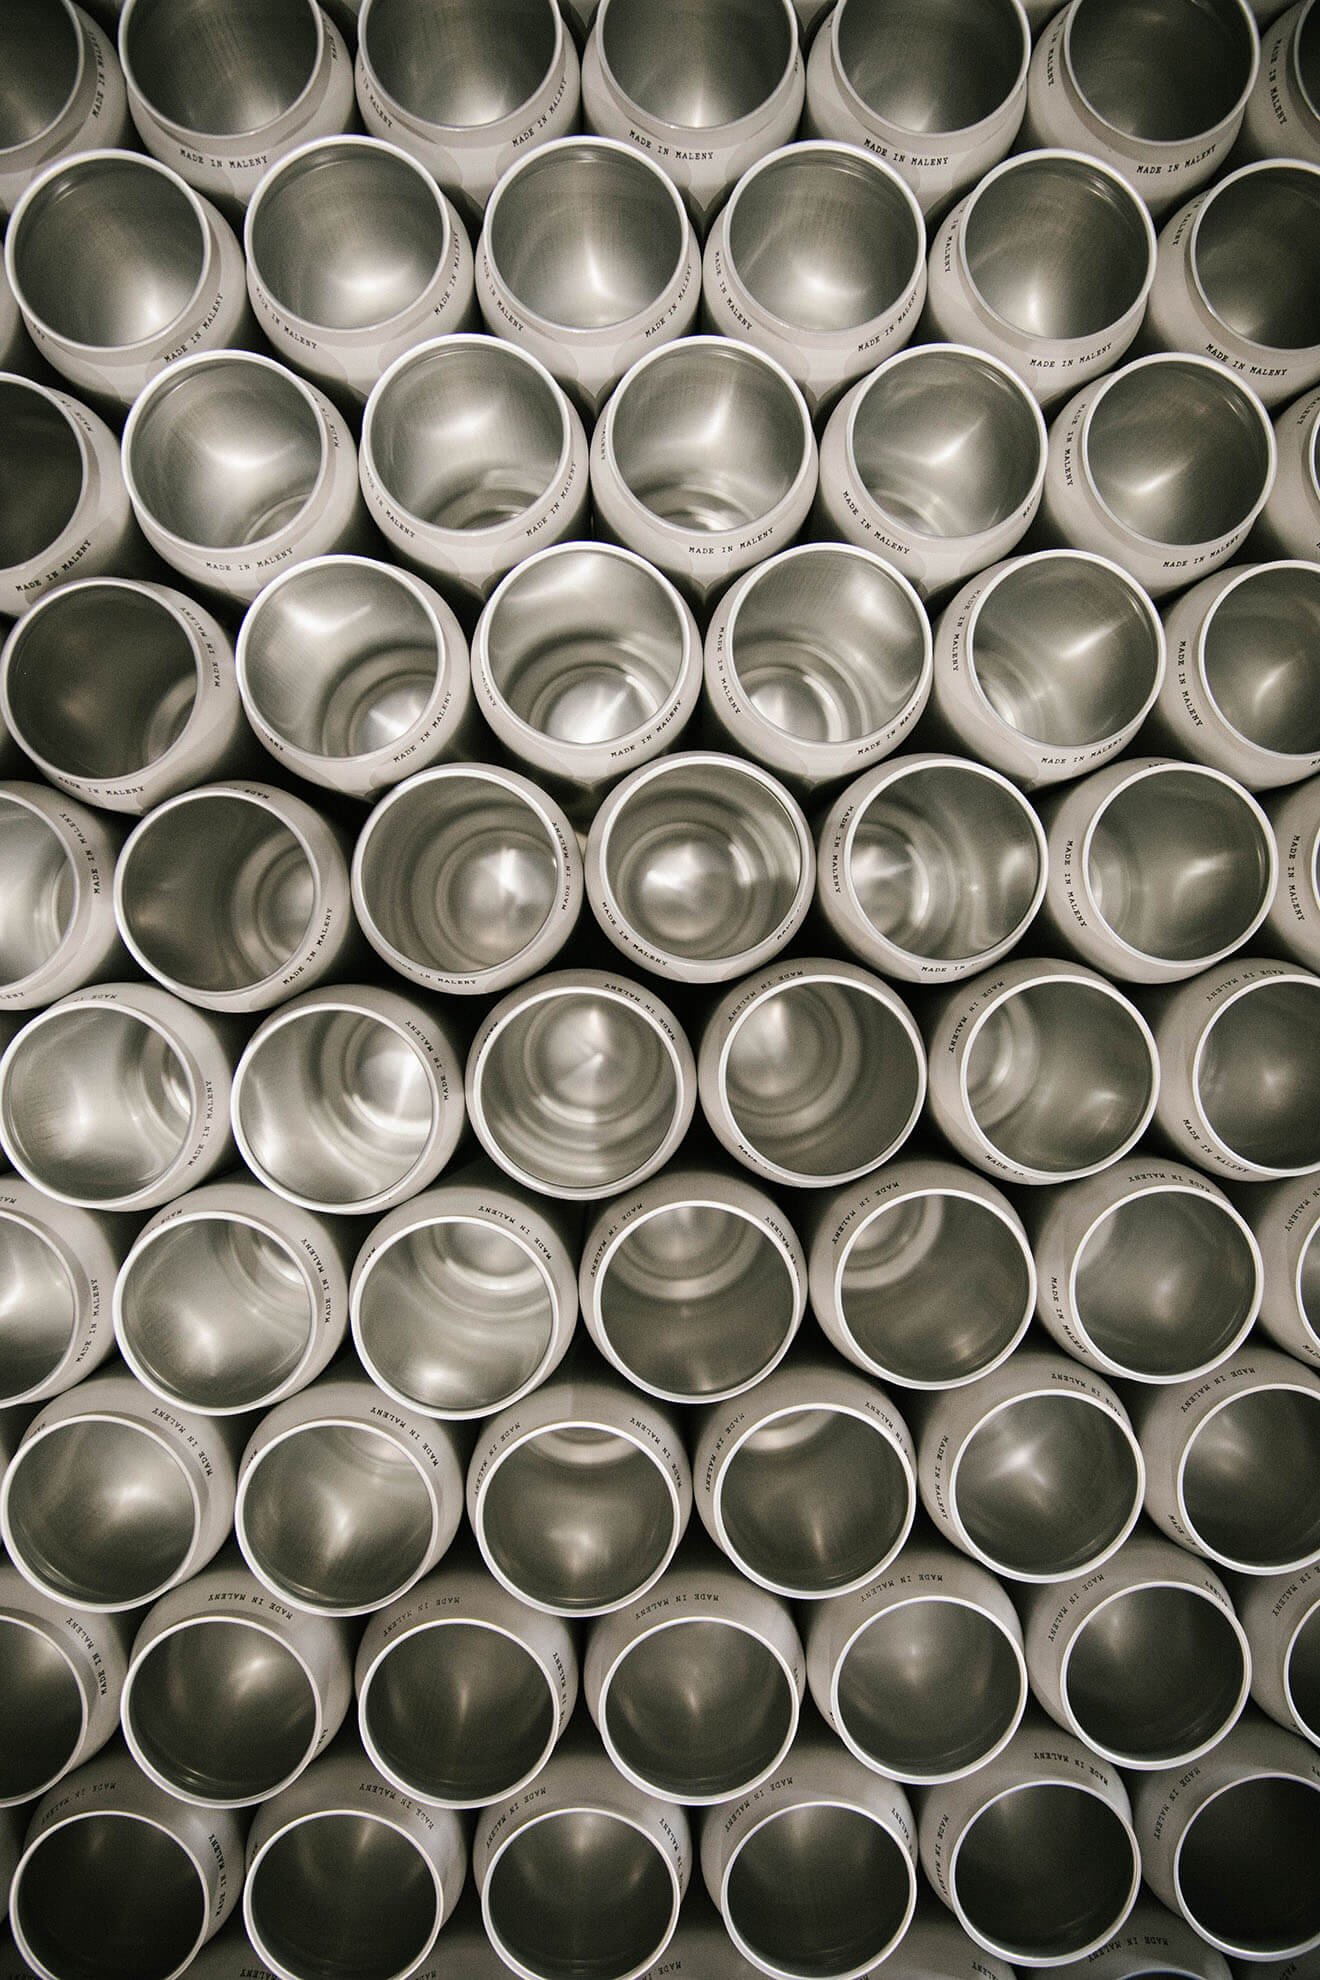 Empty cans waiting to be filled toby-stodart-